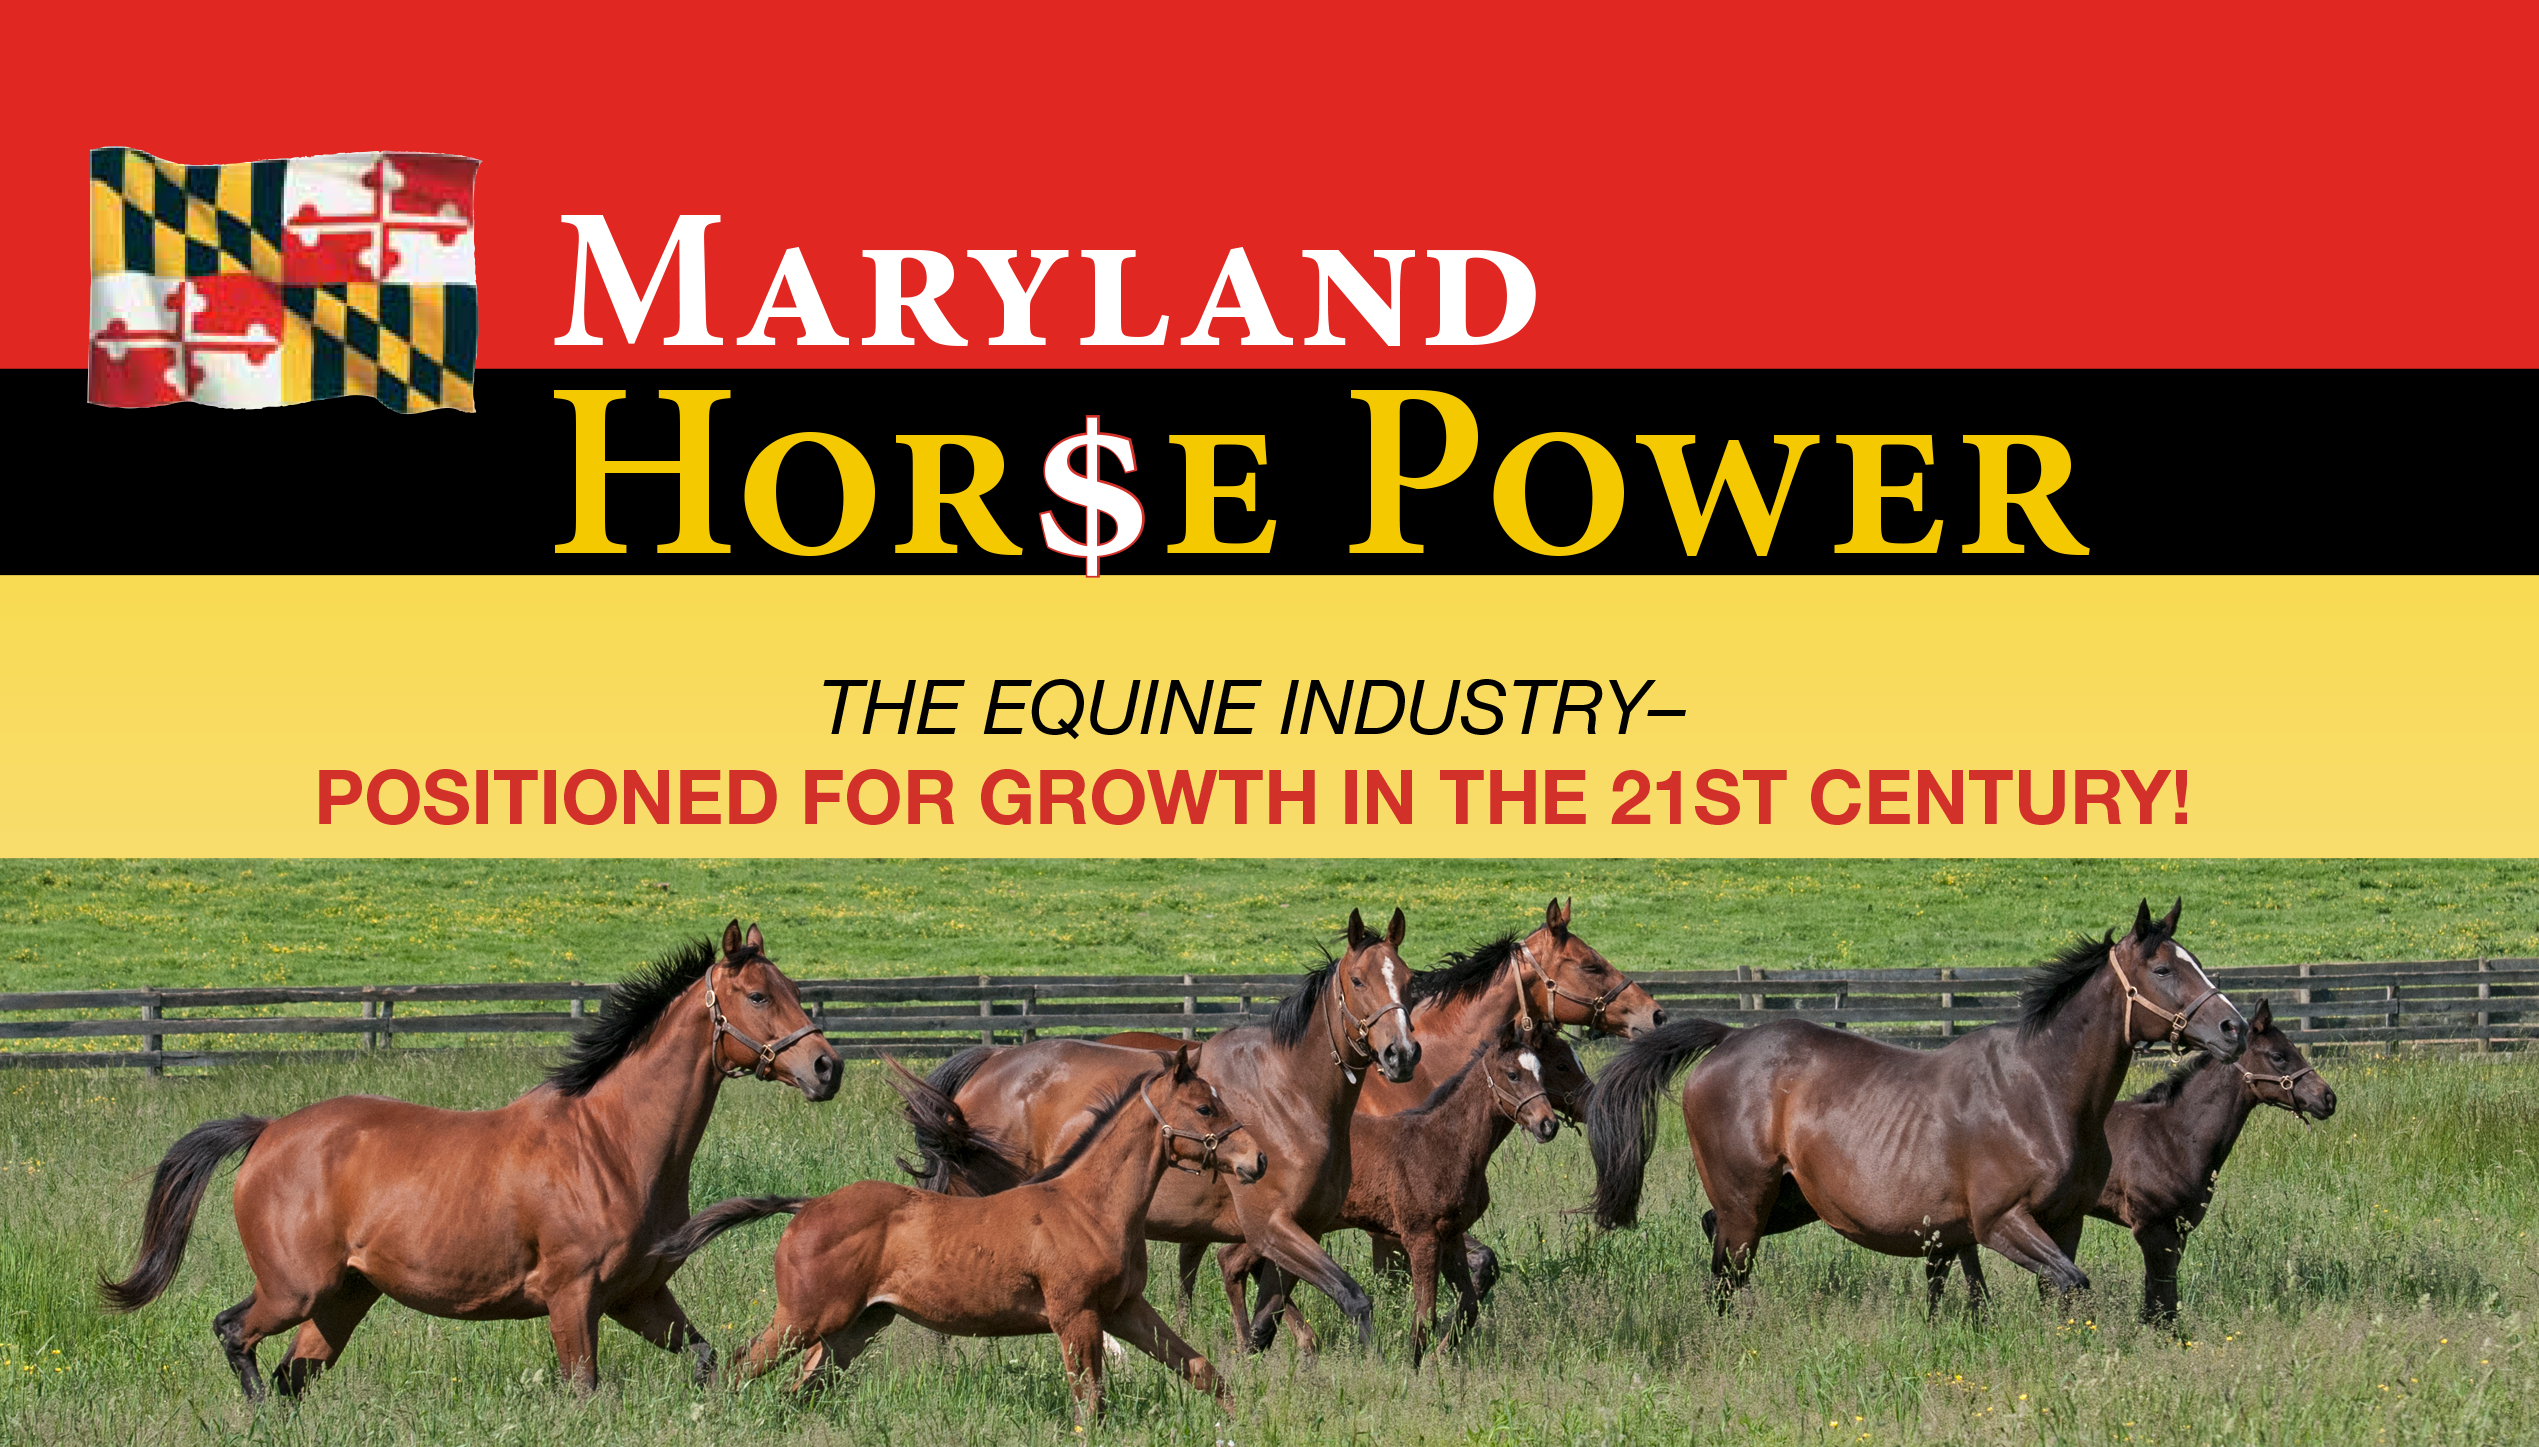 Maryland Horse Power!